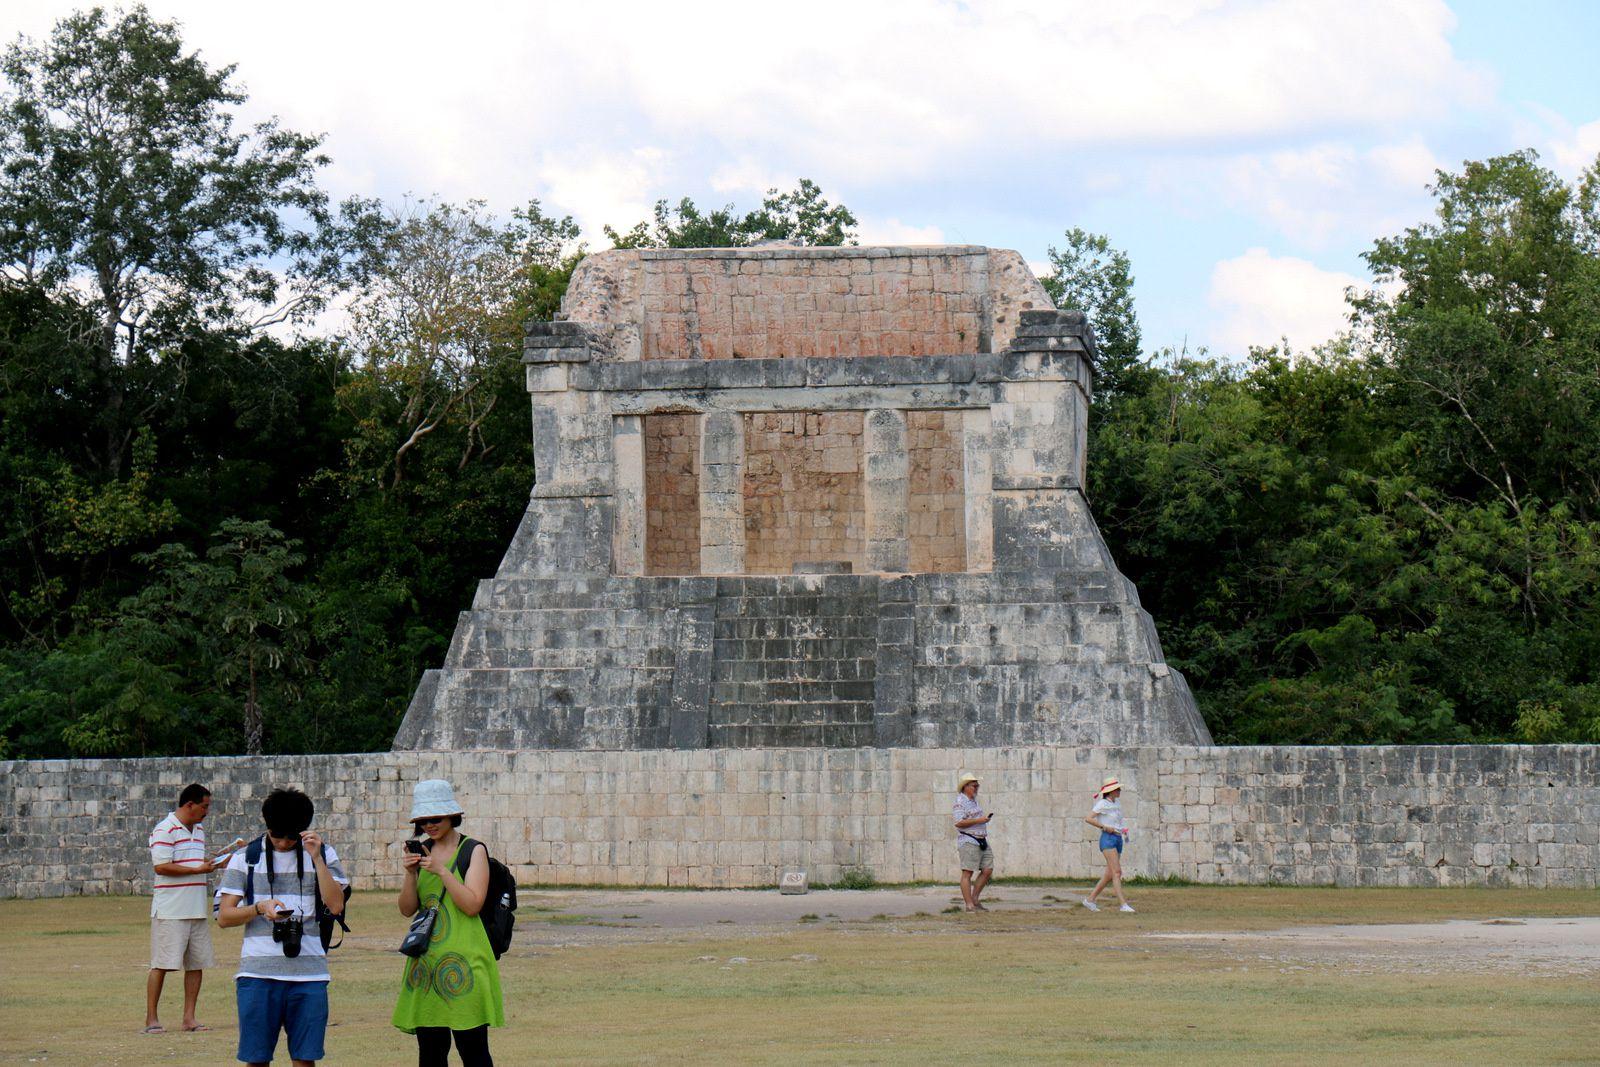 Le temple de l'homme barbu, Chichen Itza (Mexique)